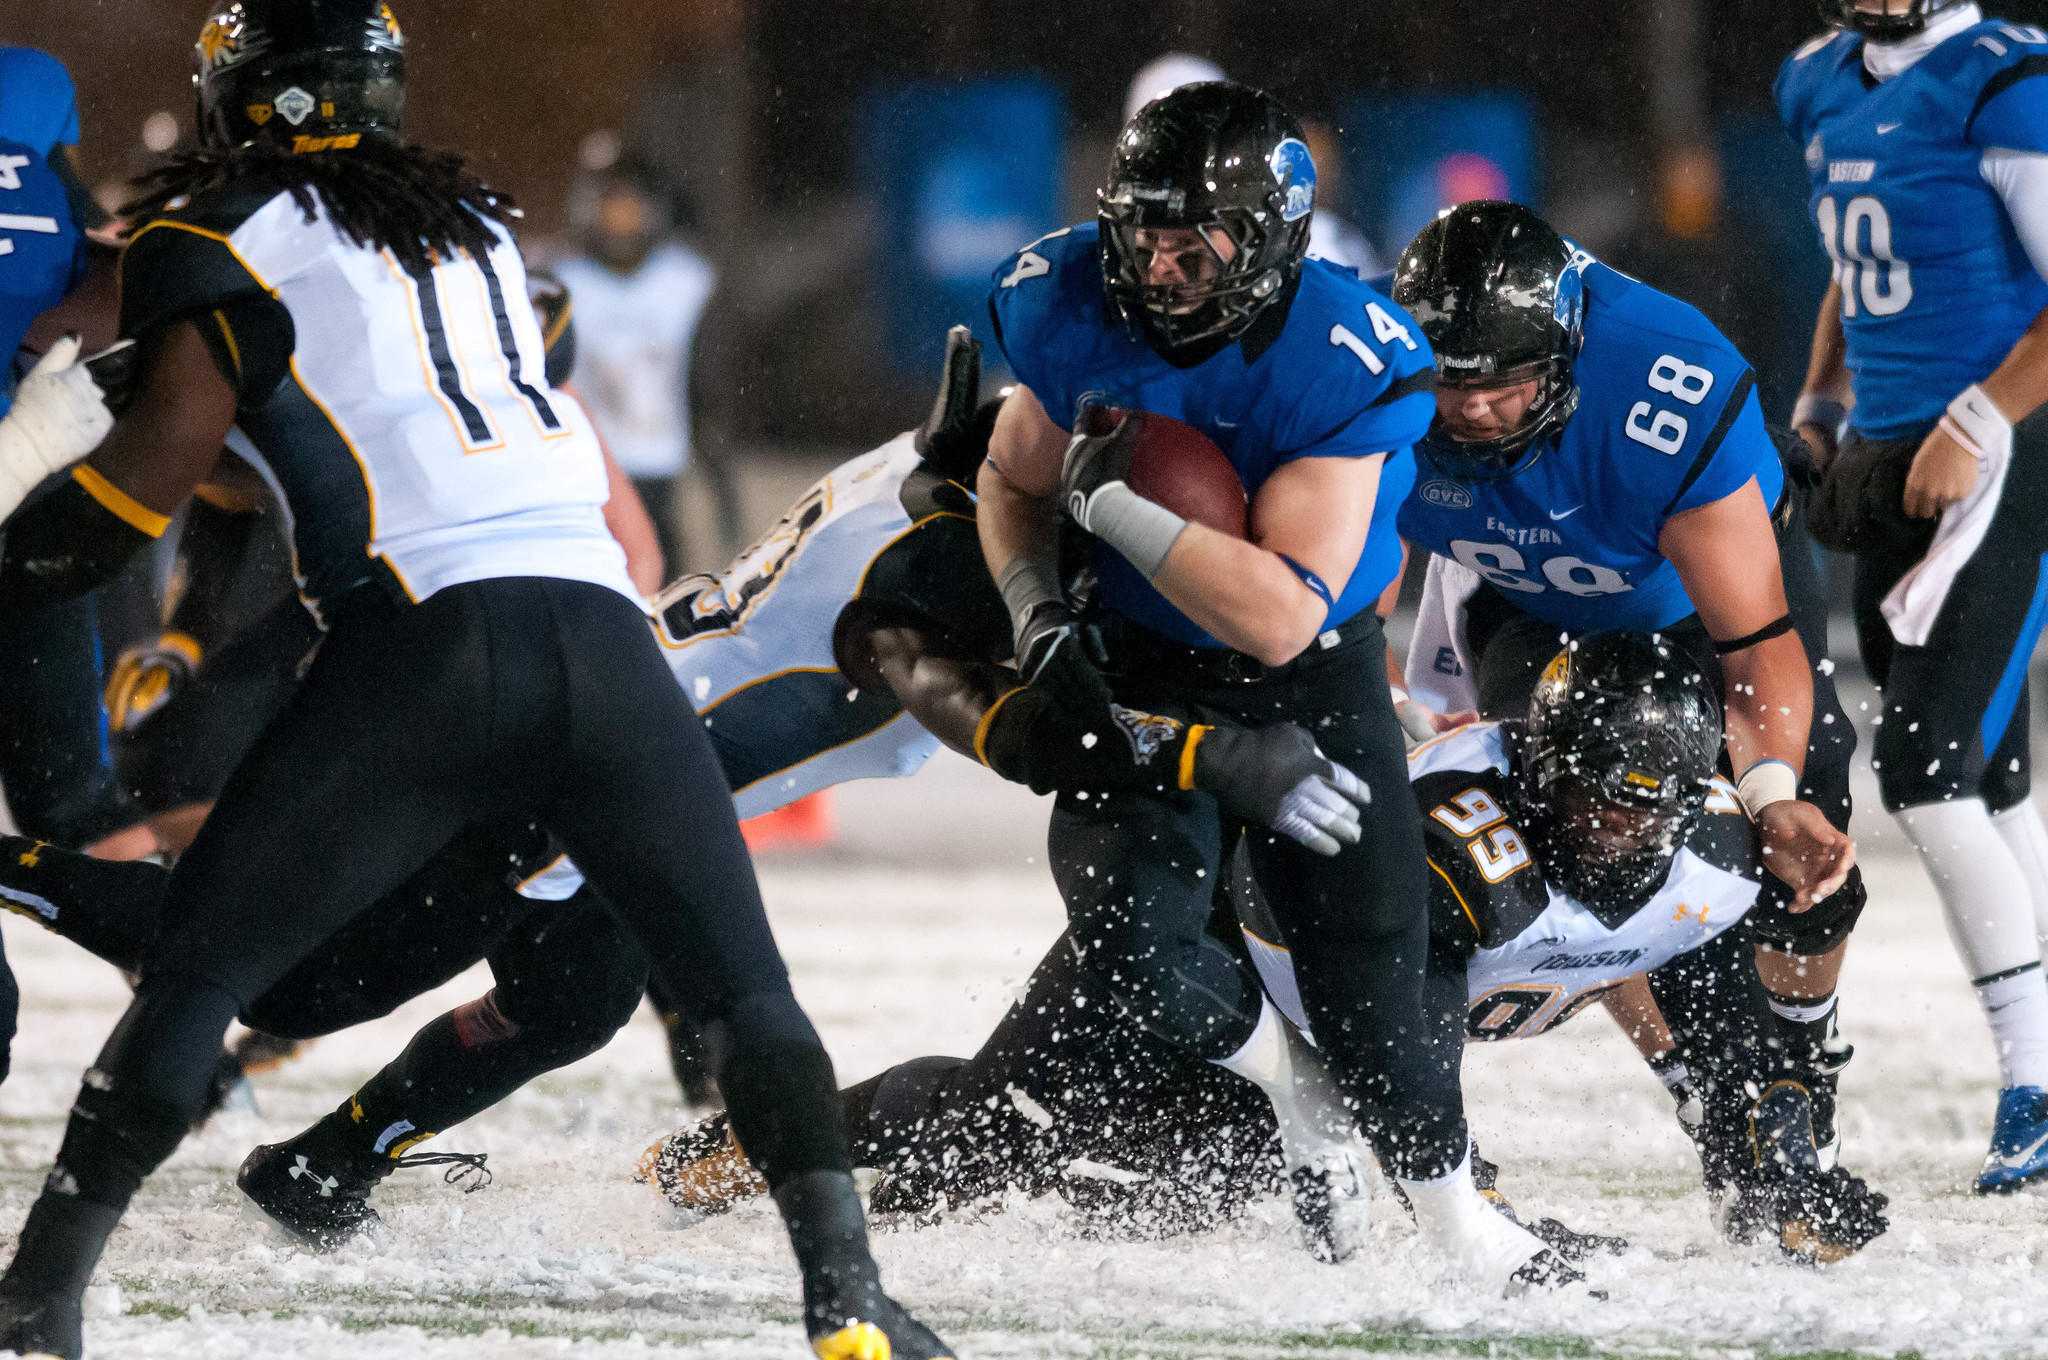 Eastern Illinois running back Taylor Duncan with the ball during the first quarter against Towson at O'Brien Field.